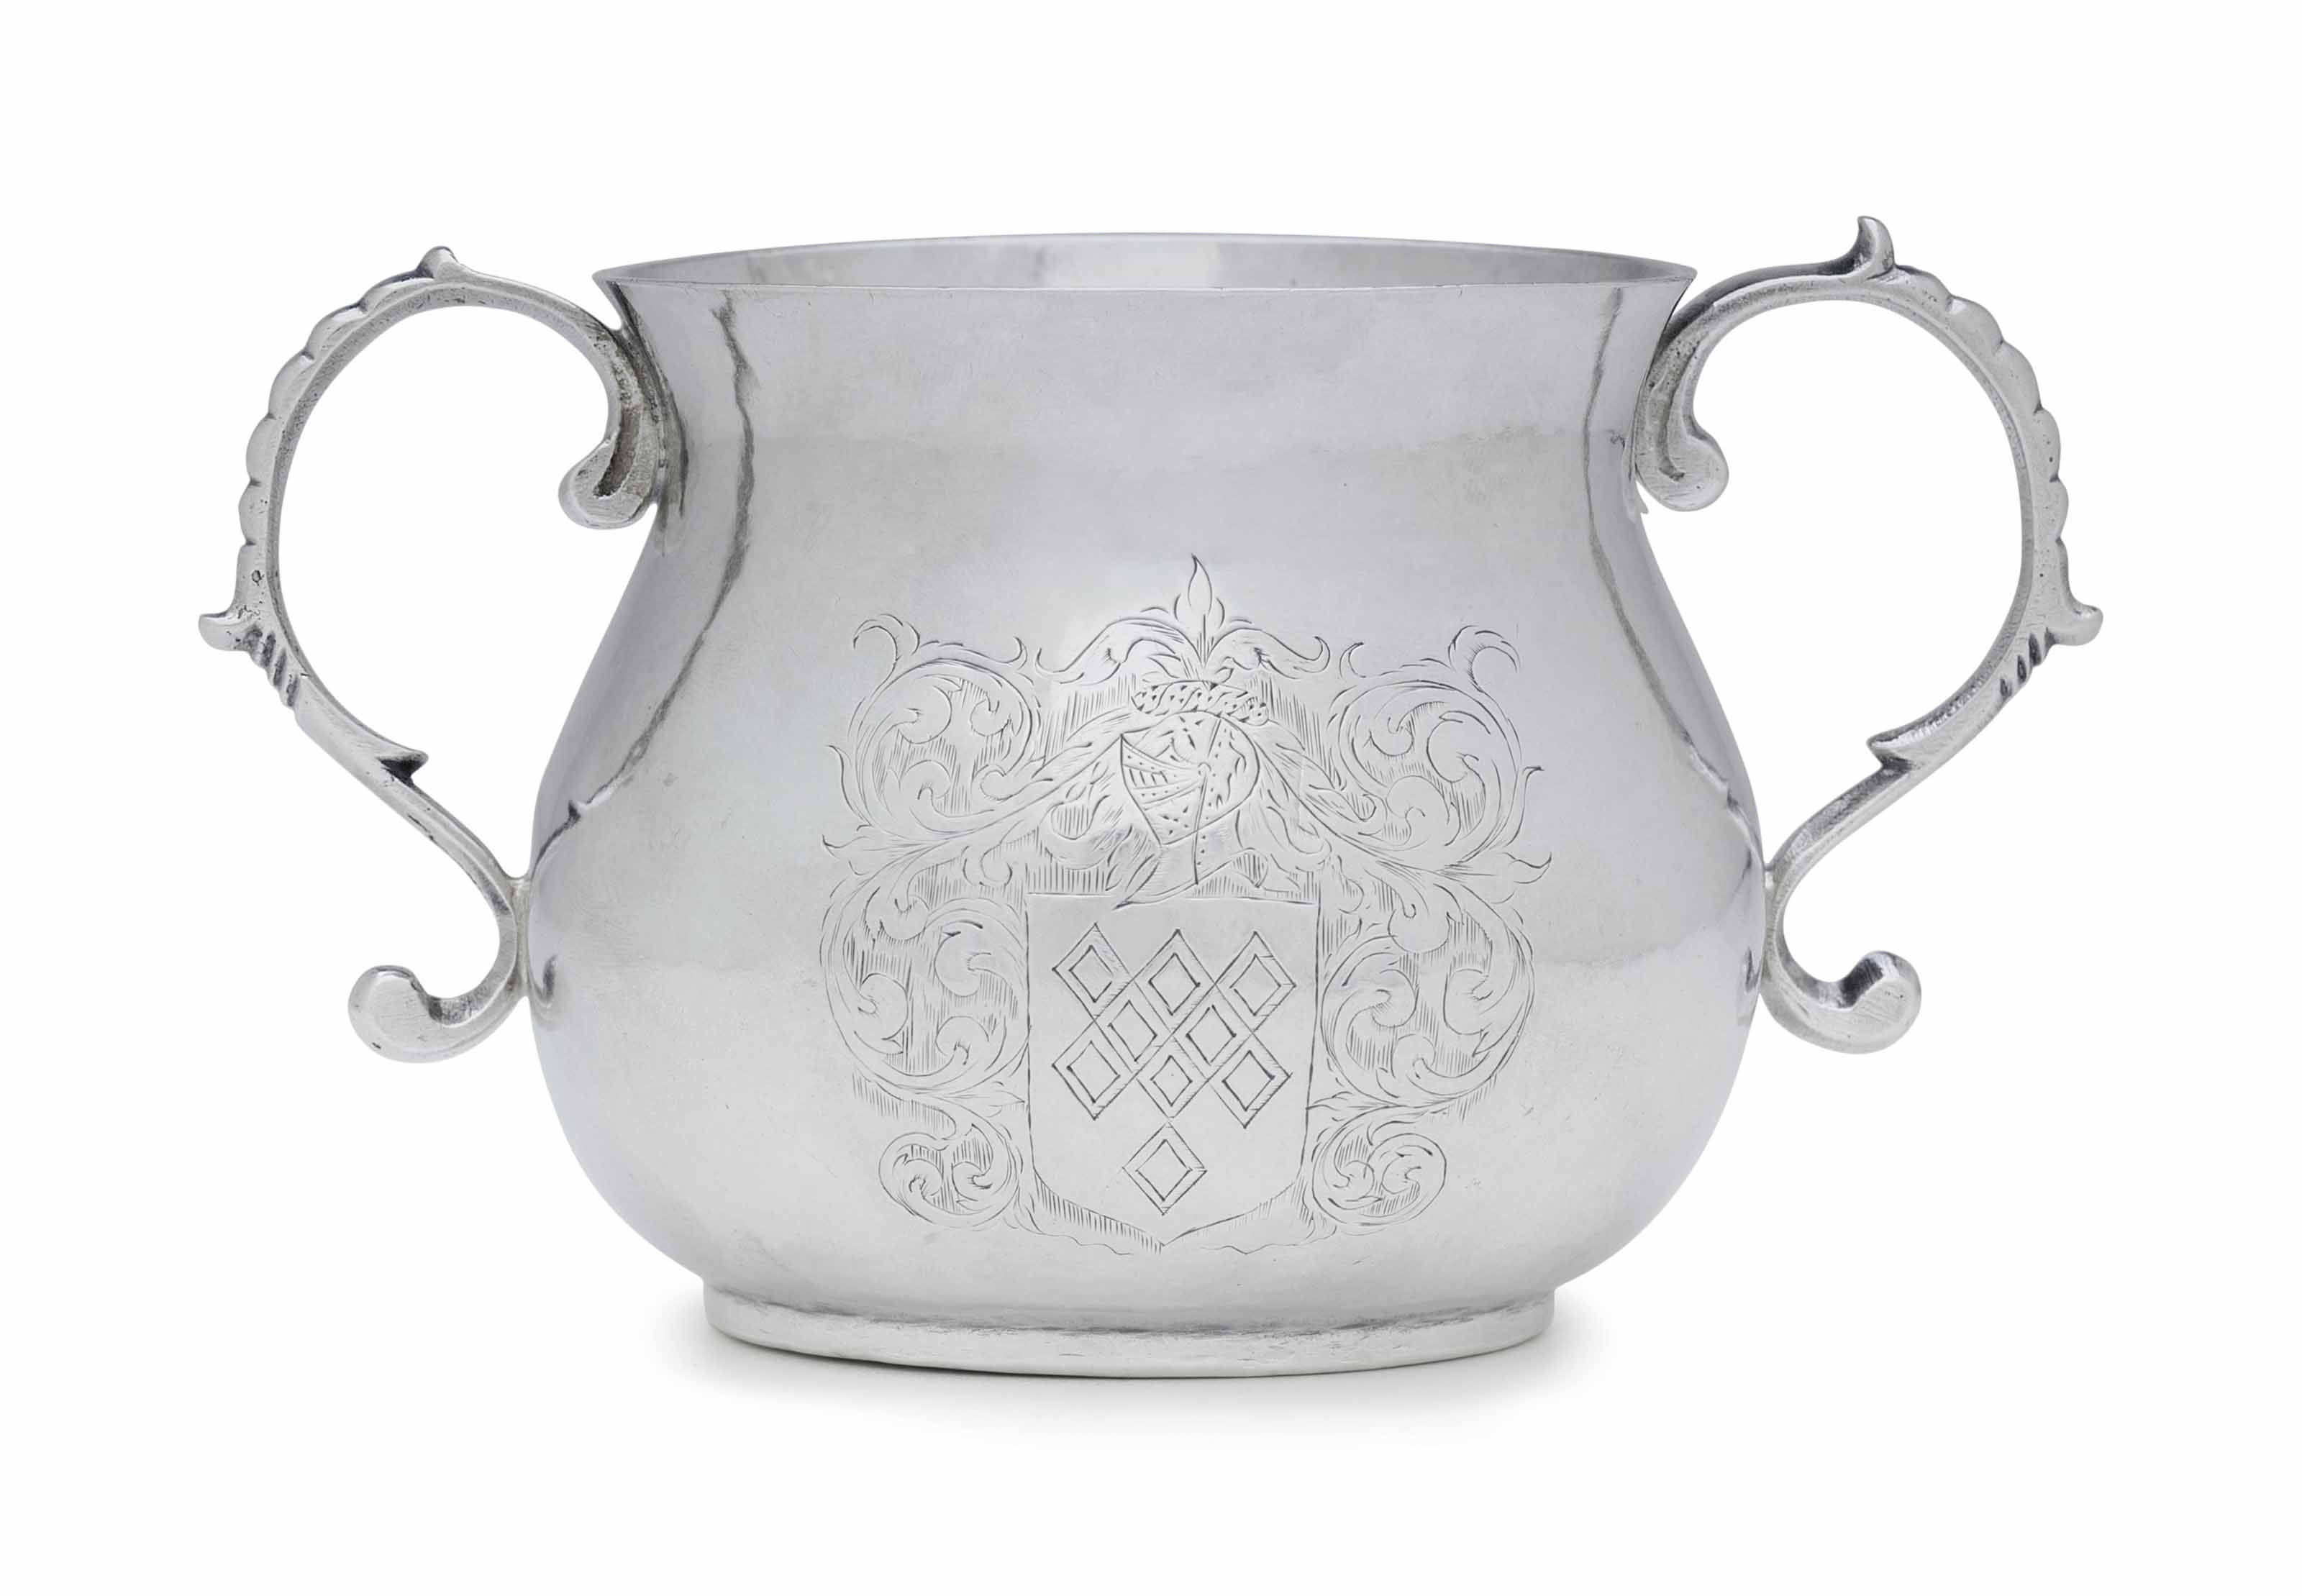 A SILVER CAUDLE CUP, ENGRAVED